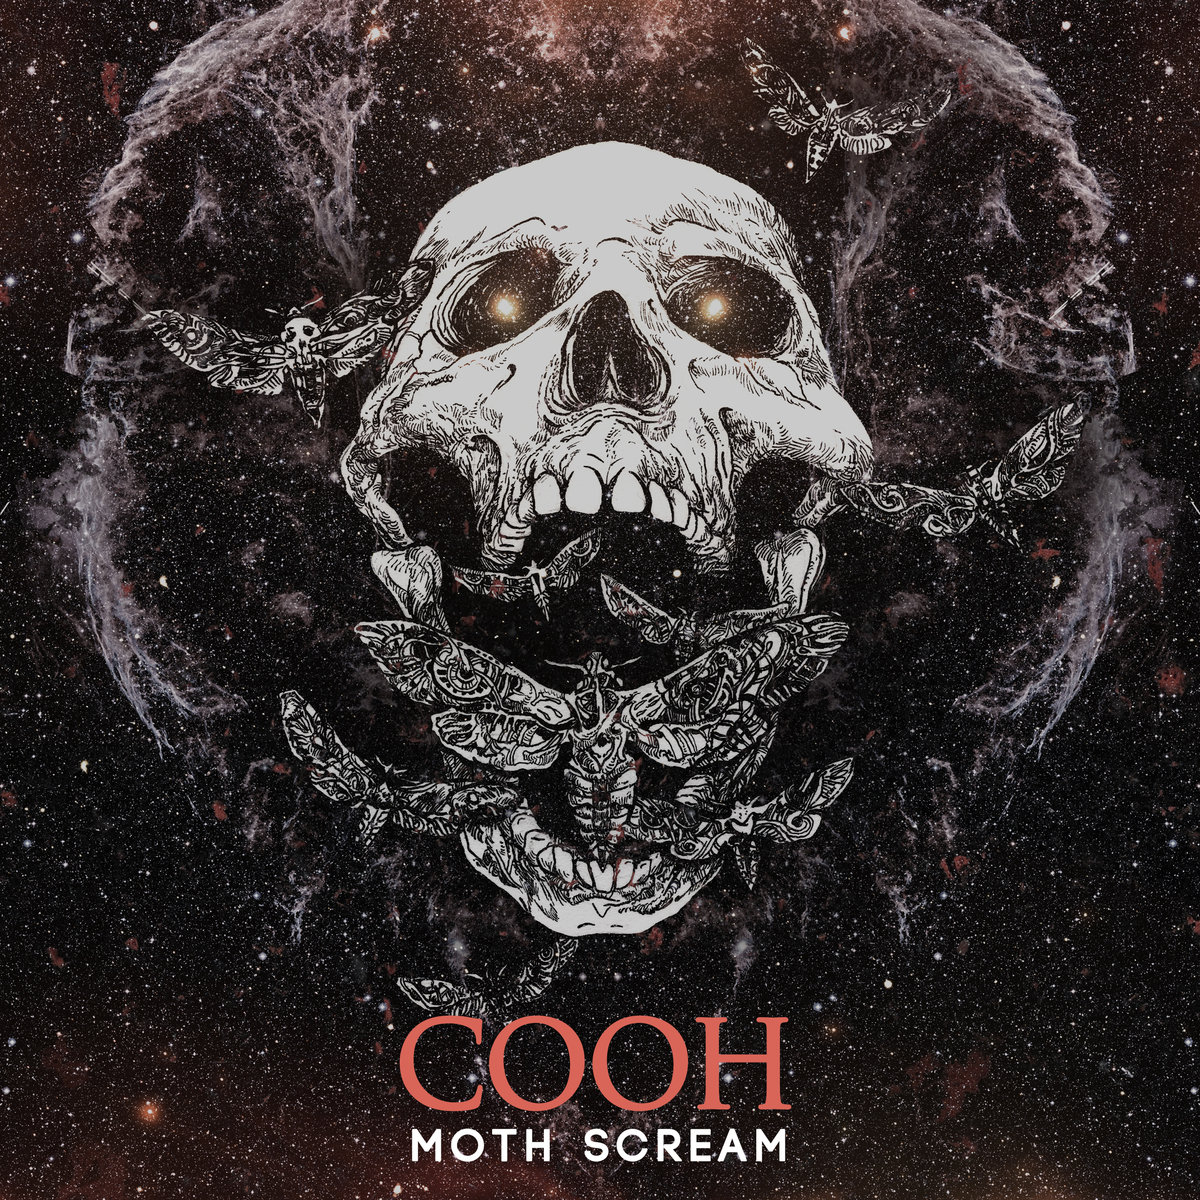 cooh-moth-scream-ep